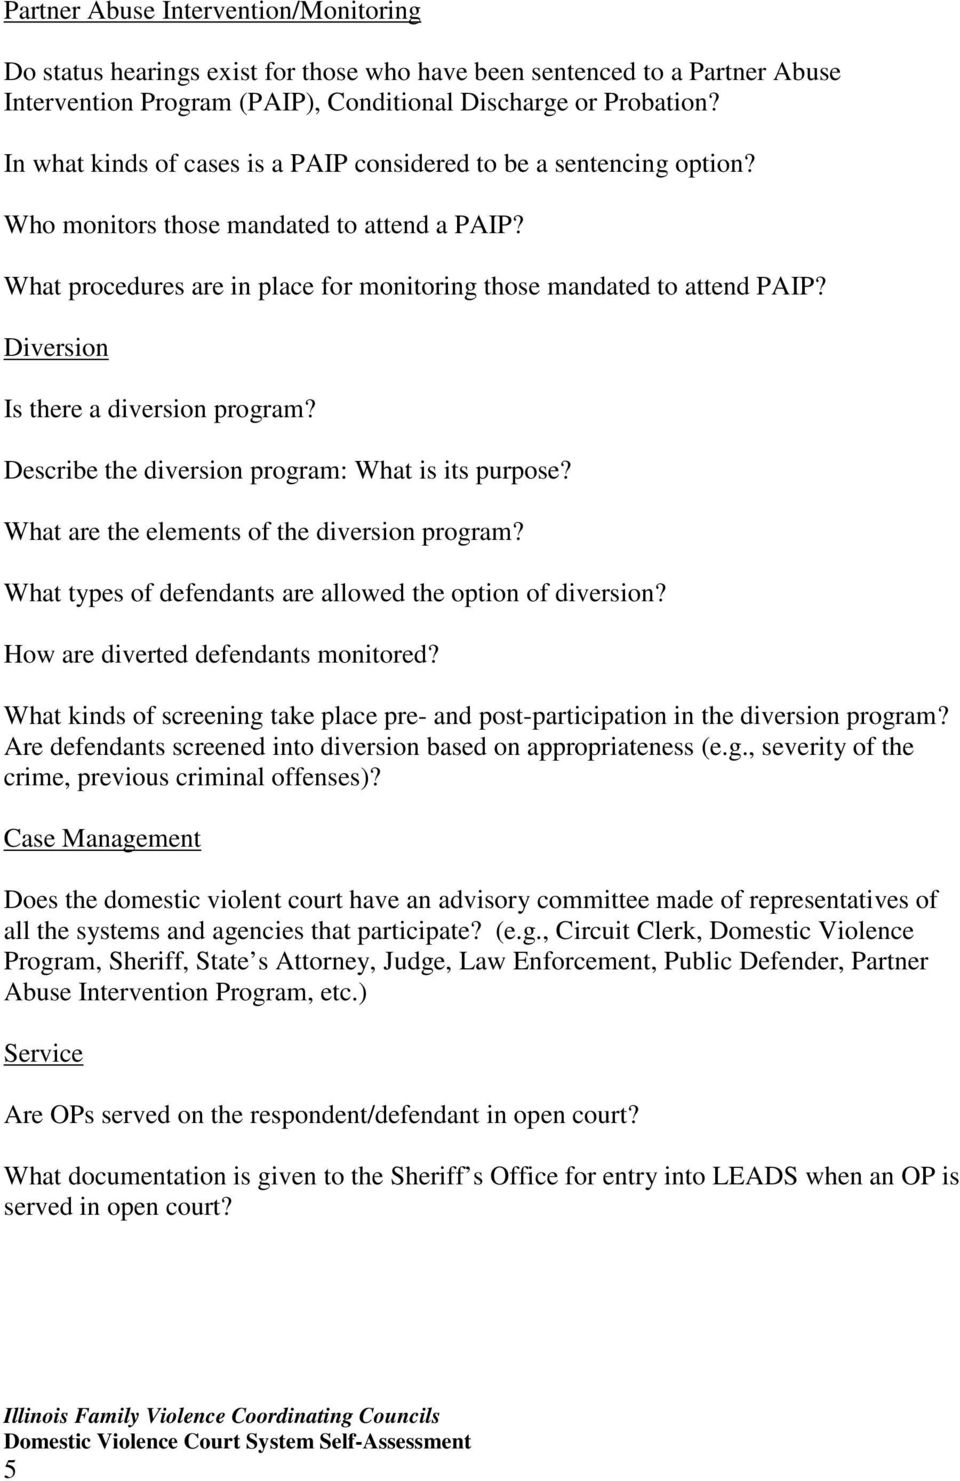 Diversion Is there a diversion program? Describe the diversion program: What is its purpose? What are the elements of the diversion program?